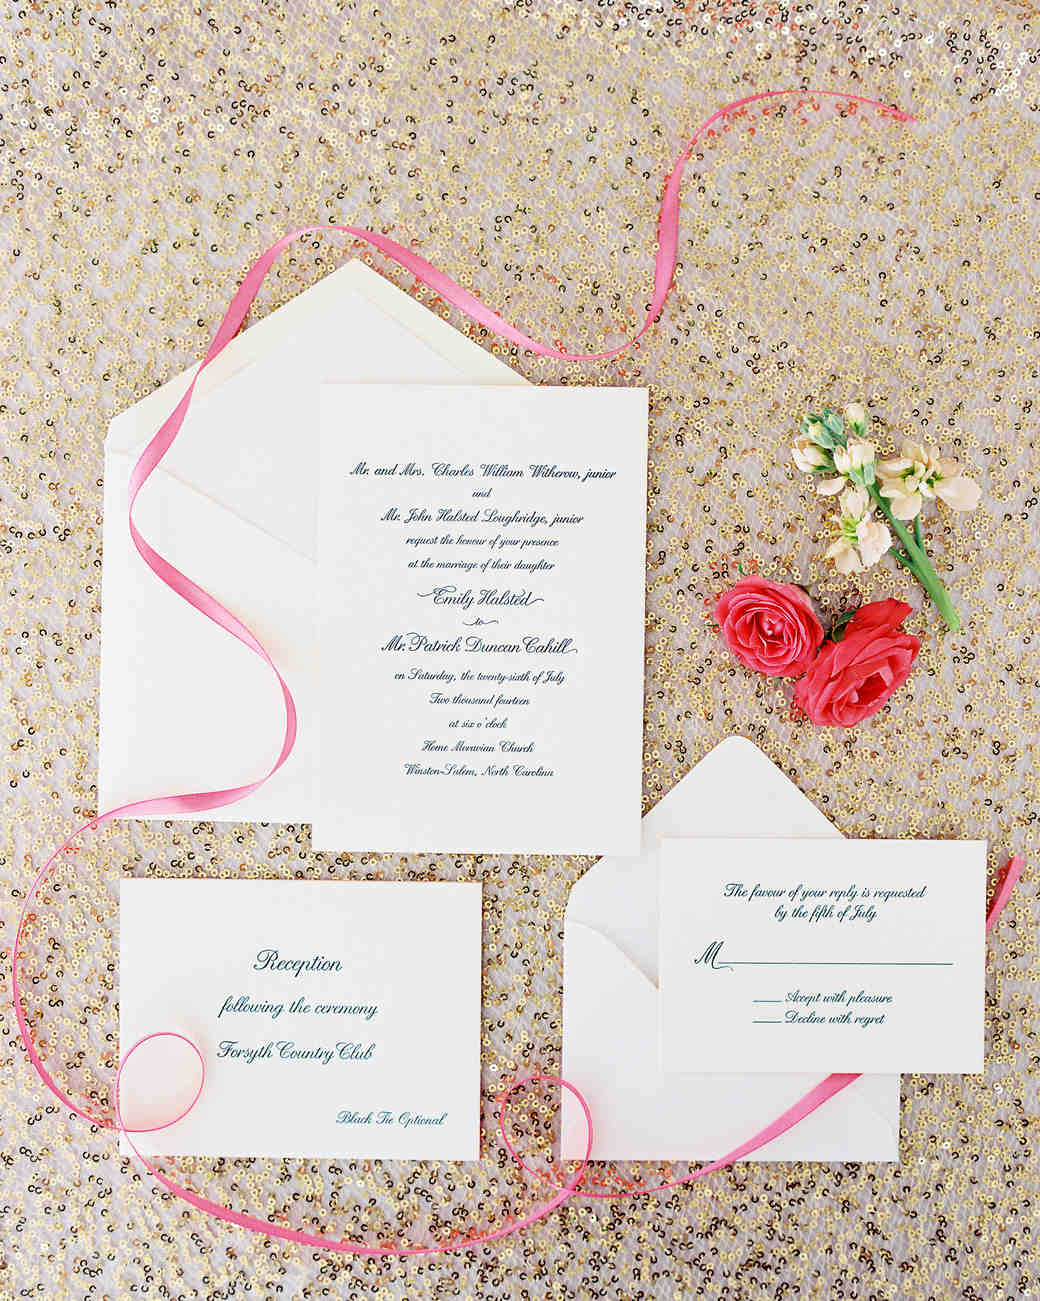 molly-patrick-wedding-invite-3037-s111760-0115.jpg